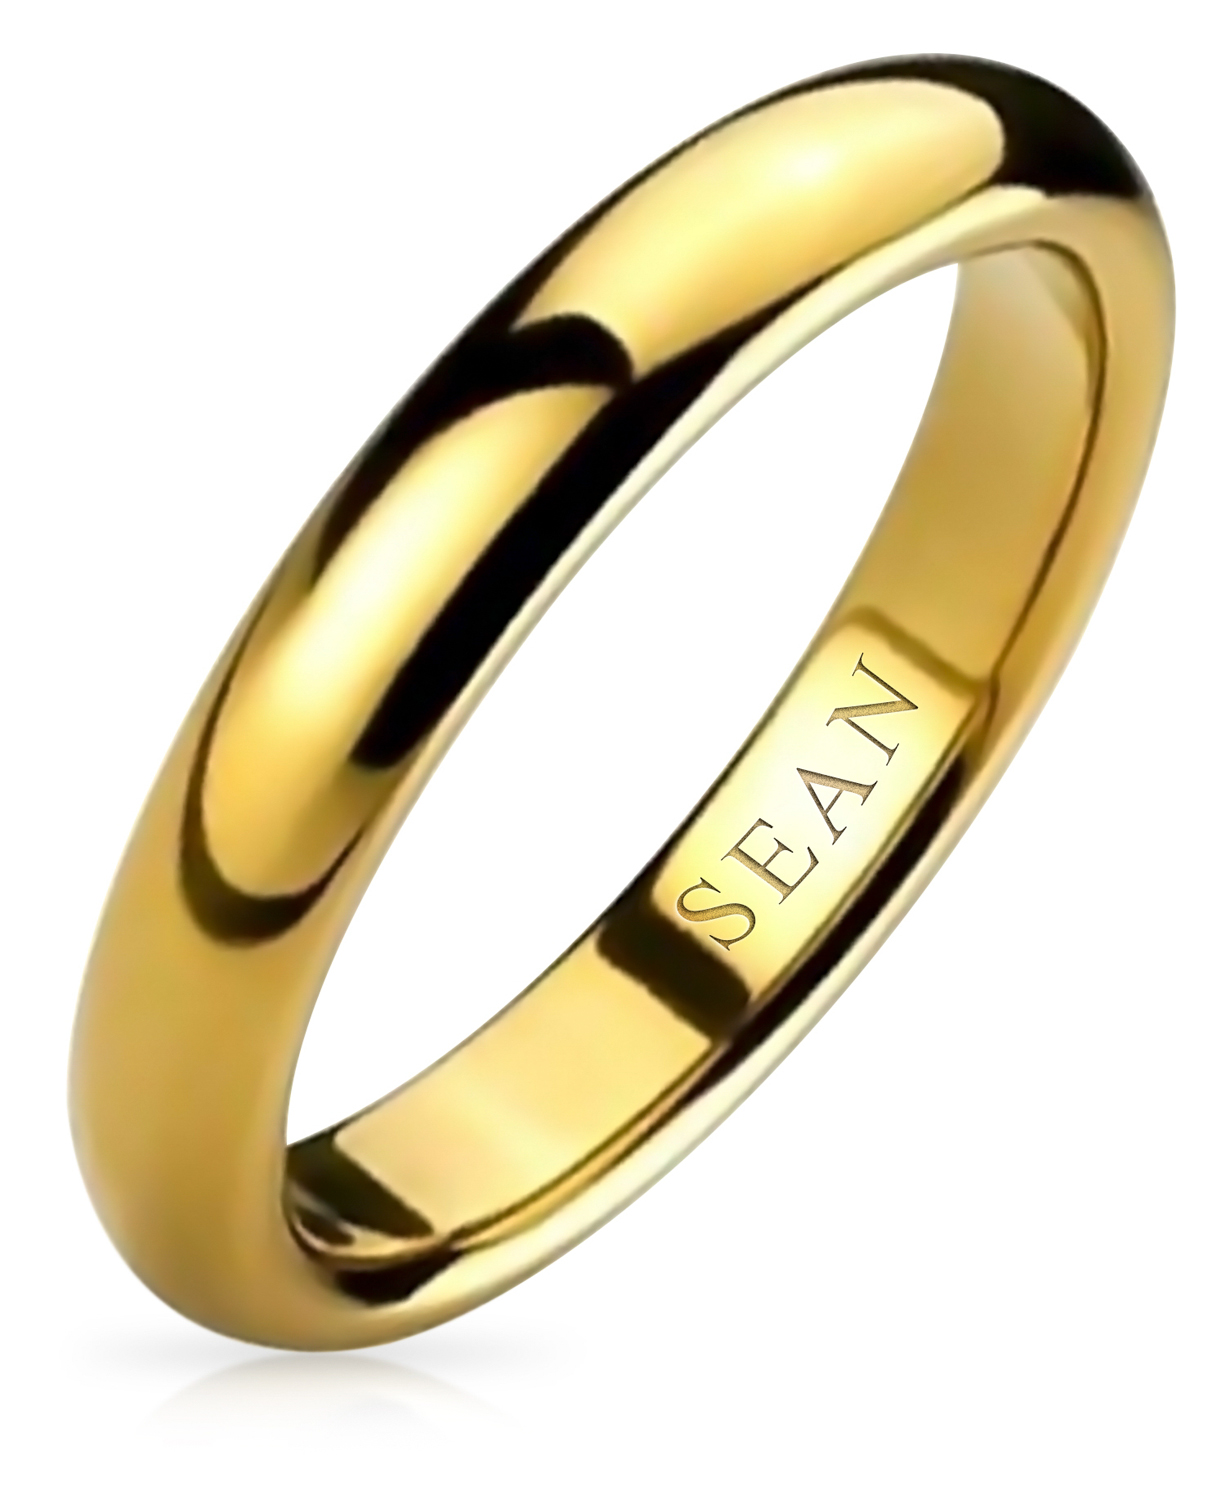 Awesome 14k Rose Gold Plated 5 mm Simple High Polish Classic Comfort Fit Engagement Wedding Band Ring